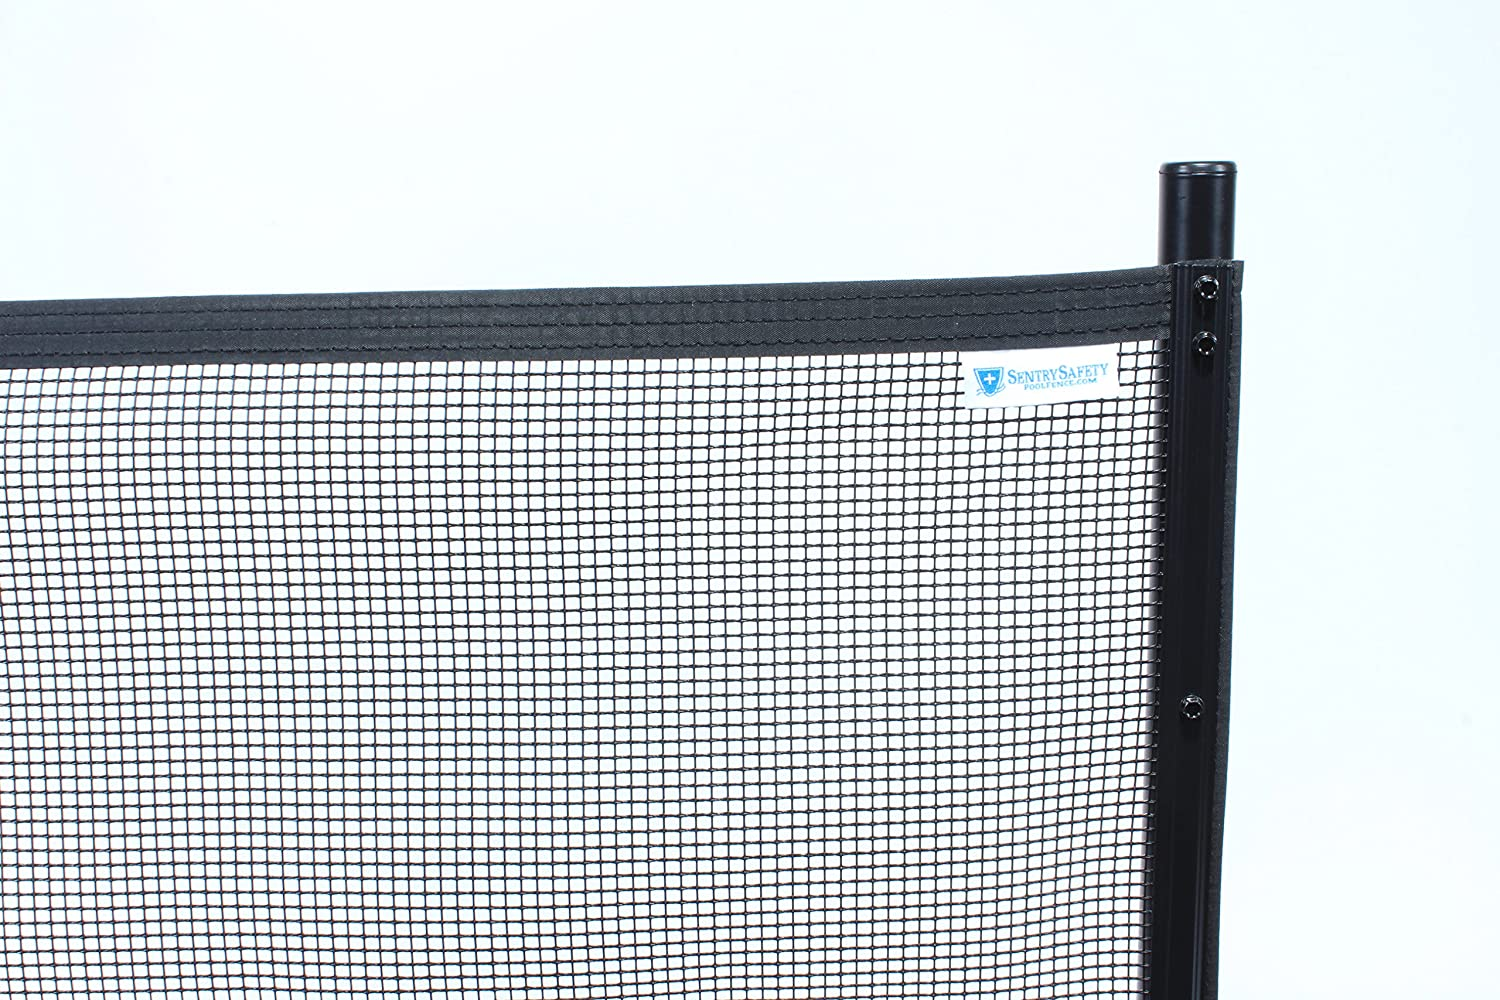 Sentry Safety Pool Fence Visiguard 4' Tall 12' Long Removable Child Barrier Pool Safety Mesh Fence (Black)